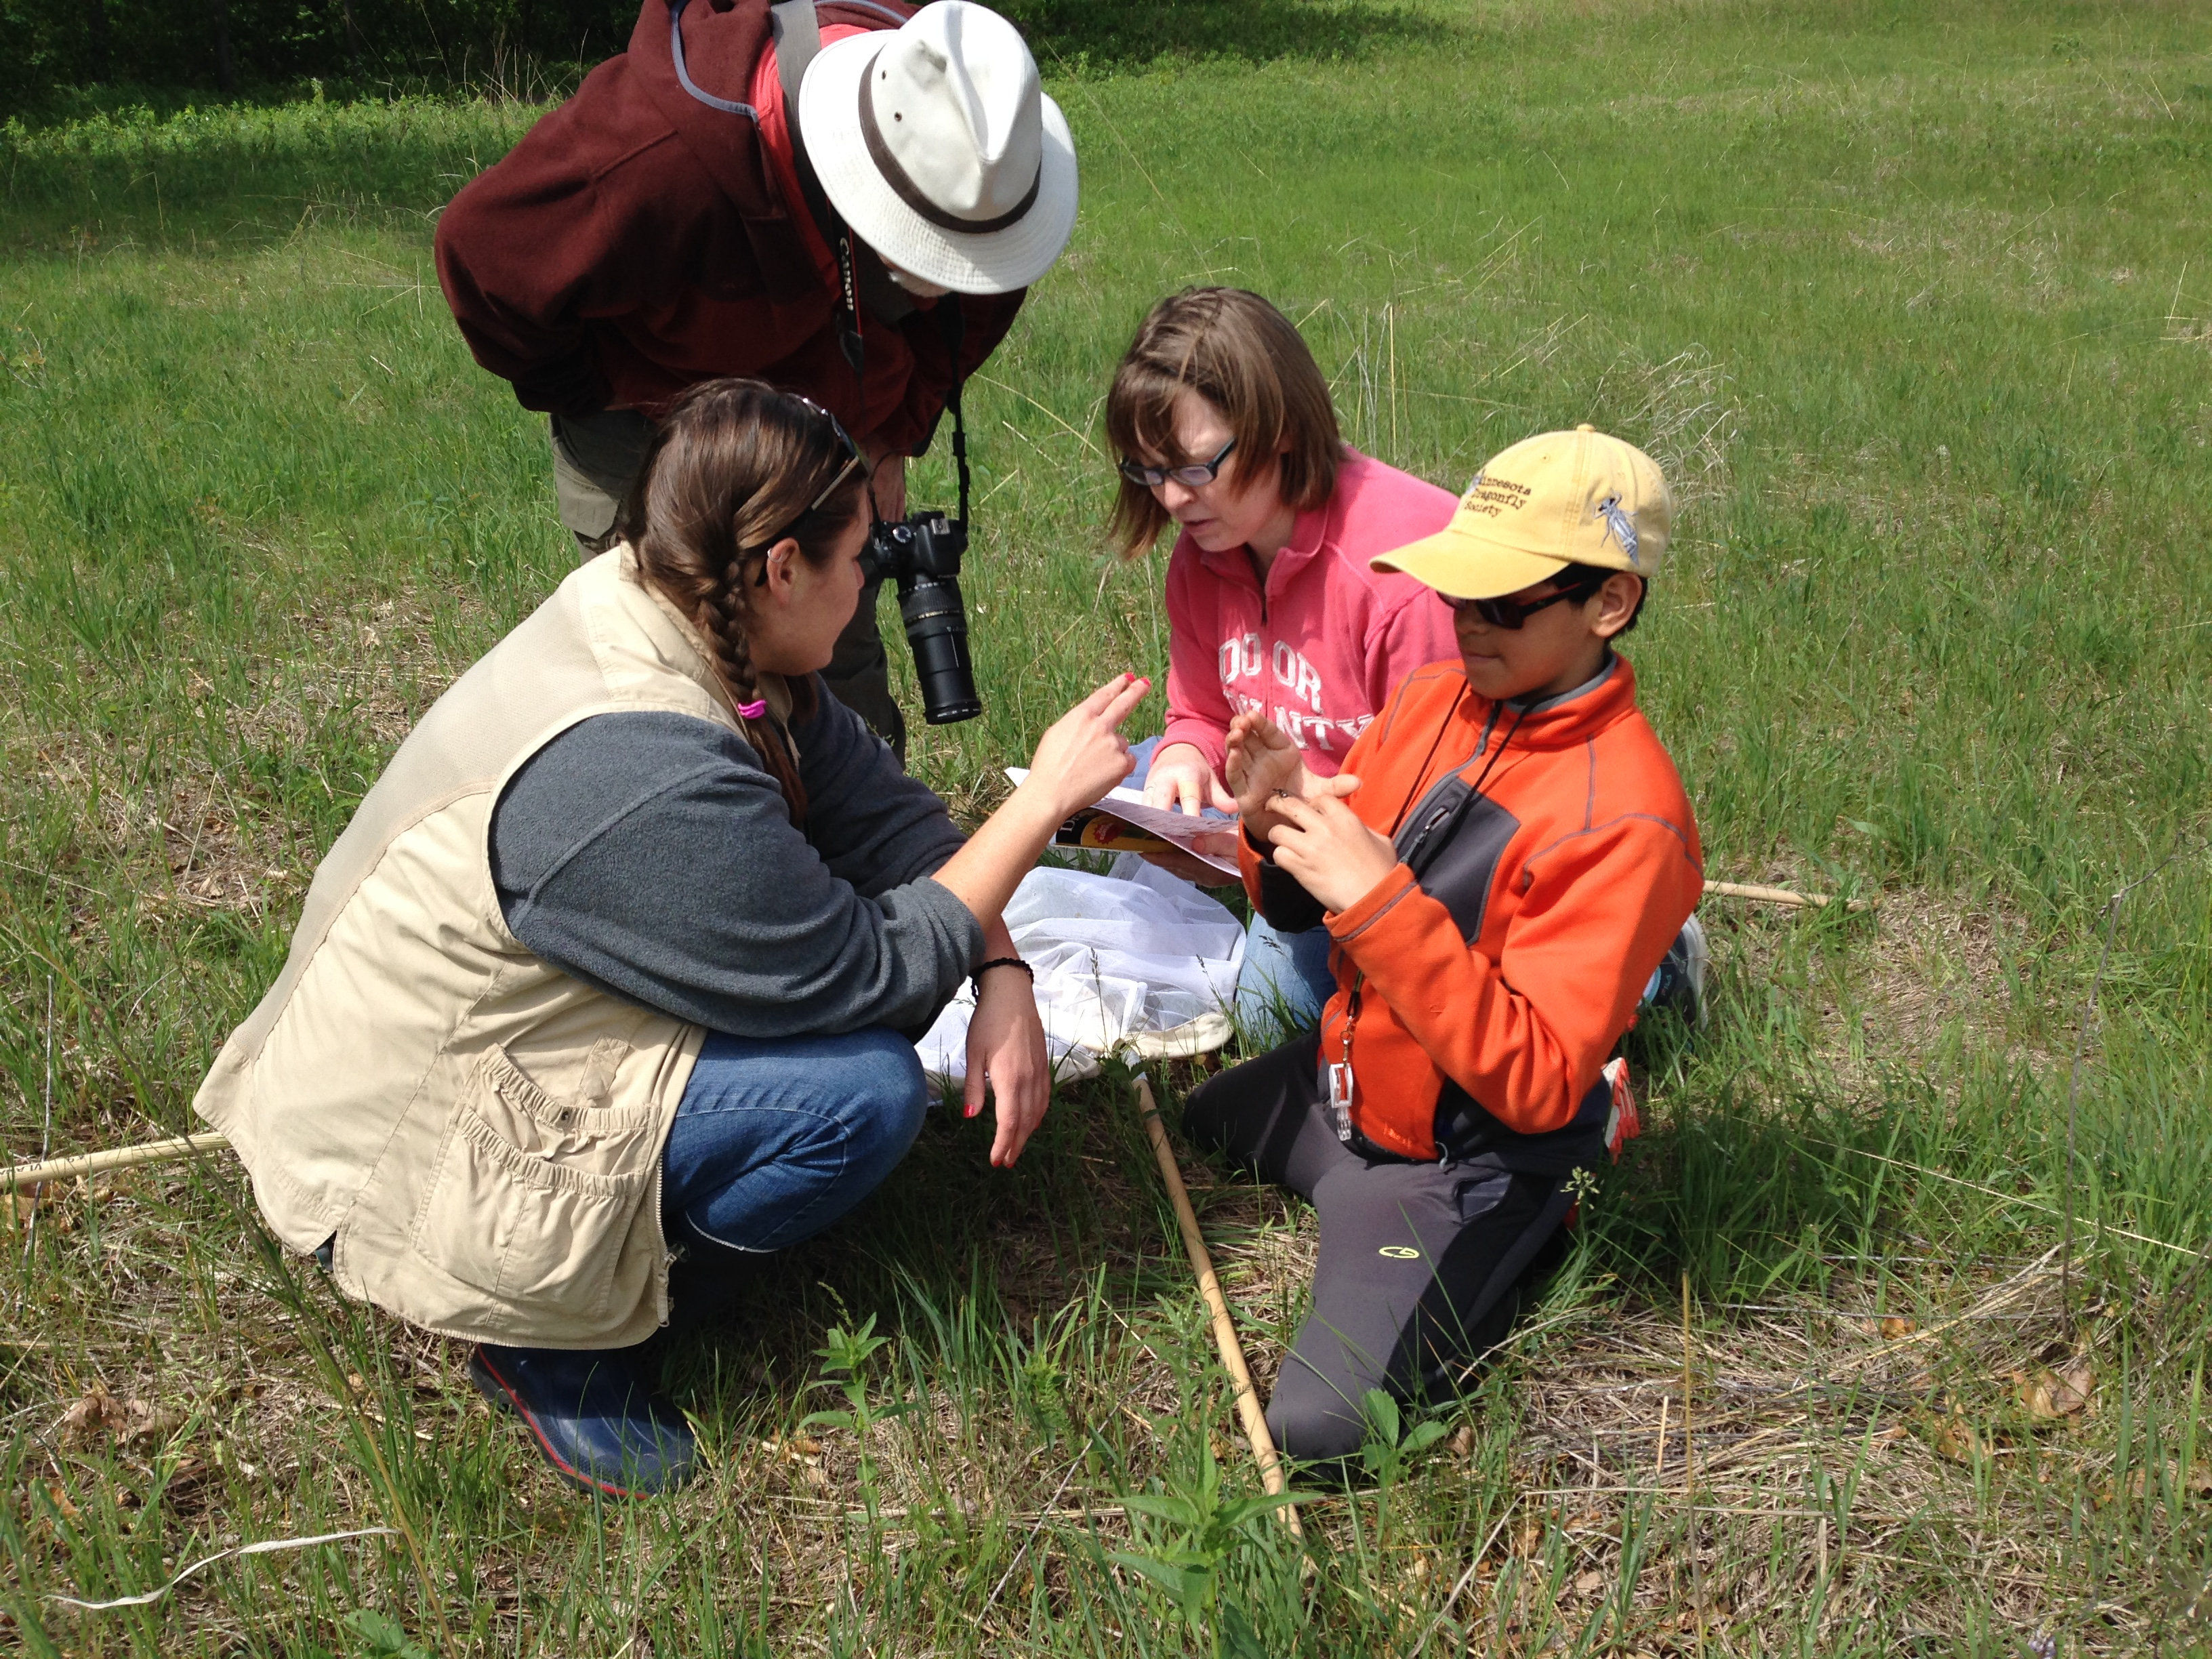 Volunteers assist youth with dragonfly monitoring